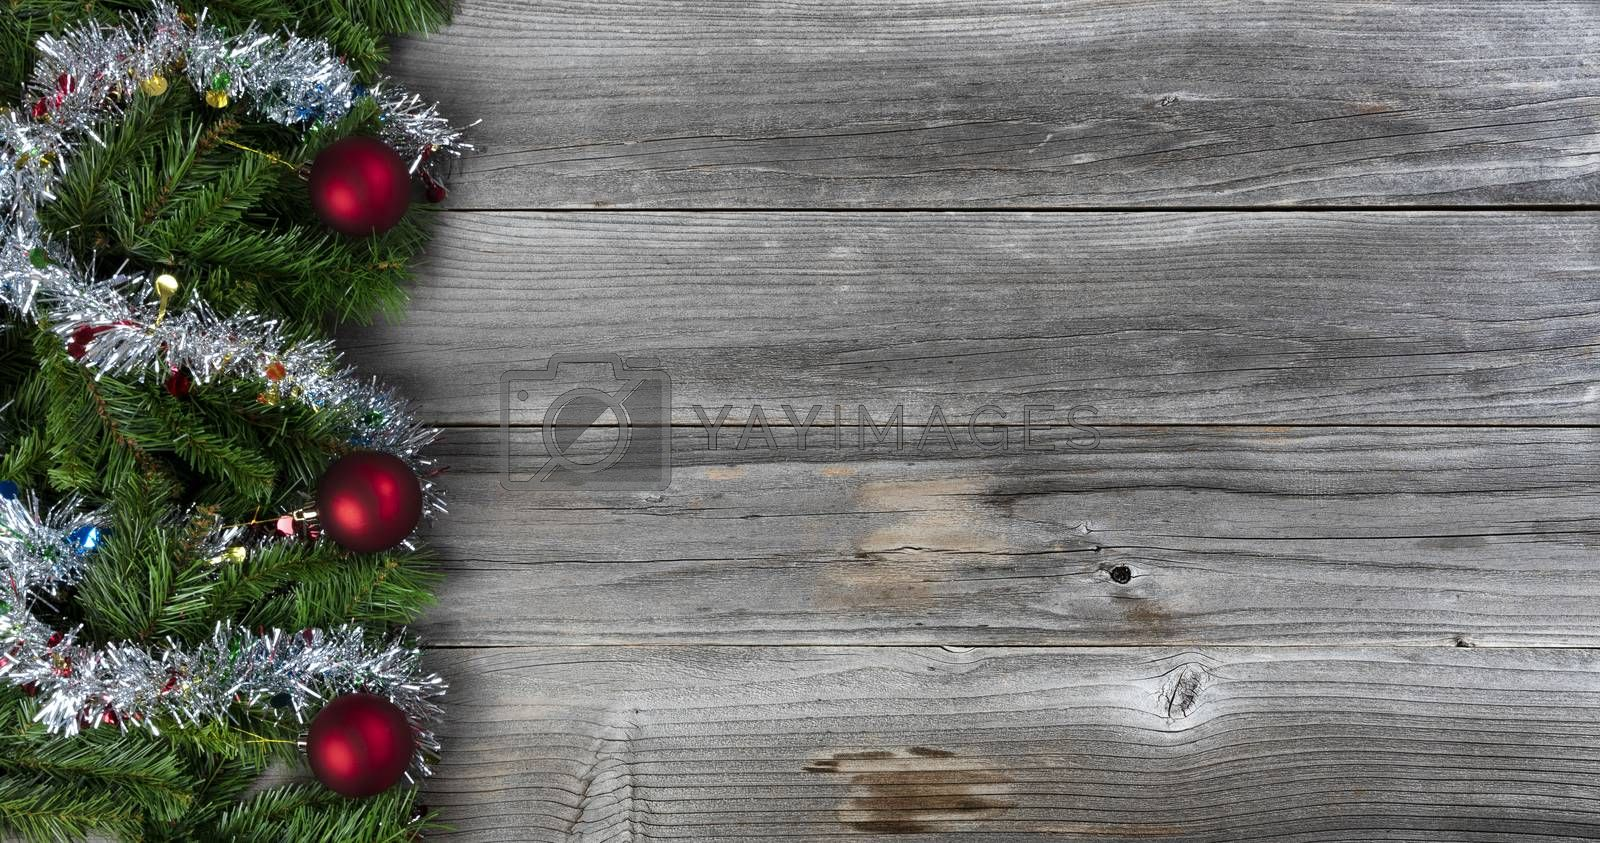 Merry Christmas and Happy New Year holiday concept with silver tinsel and red ball ornaments on rustic wood